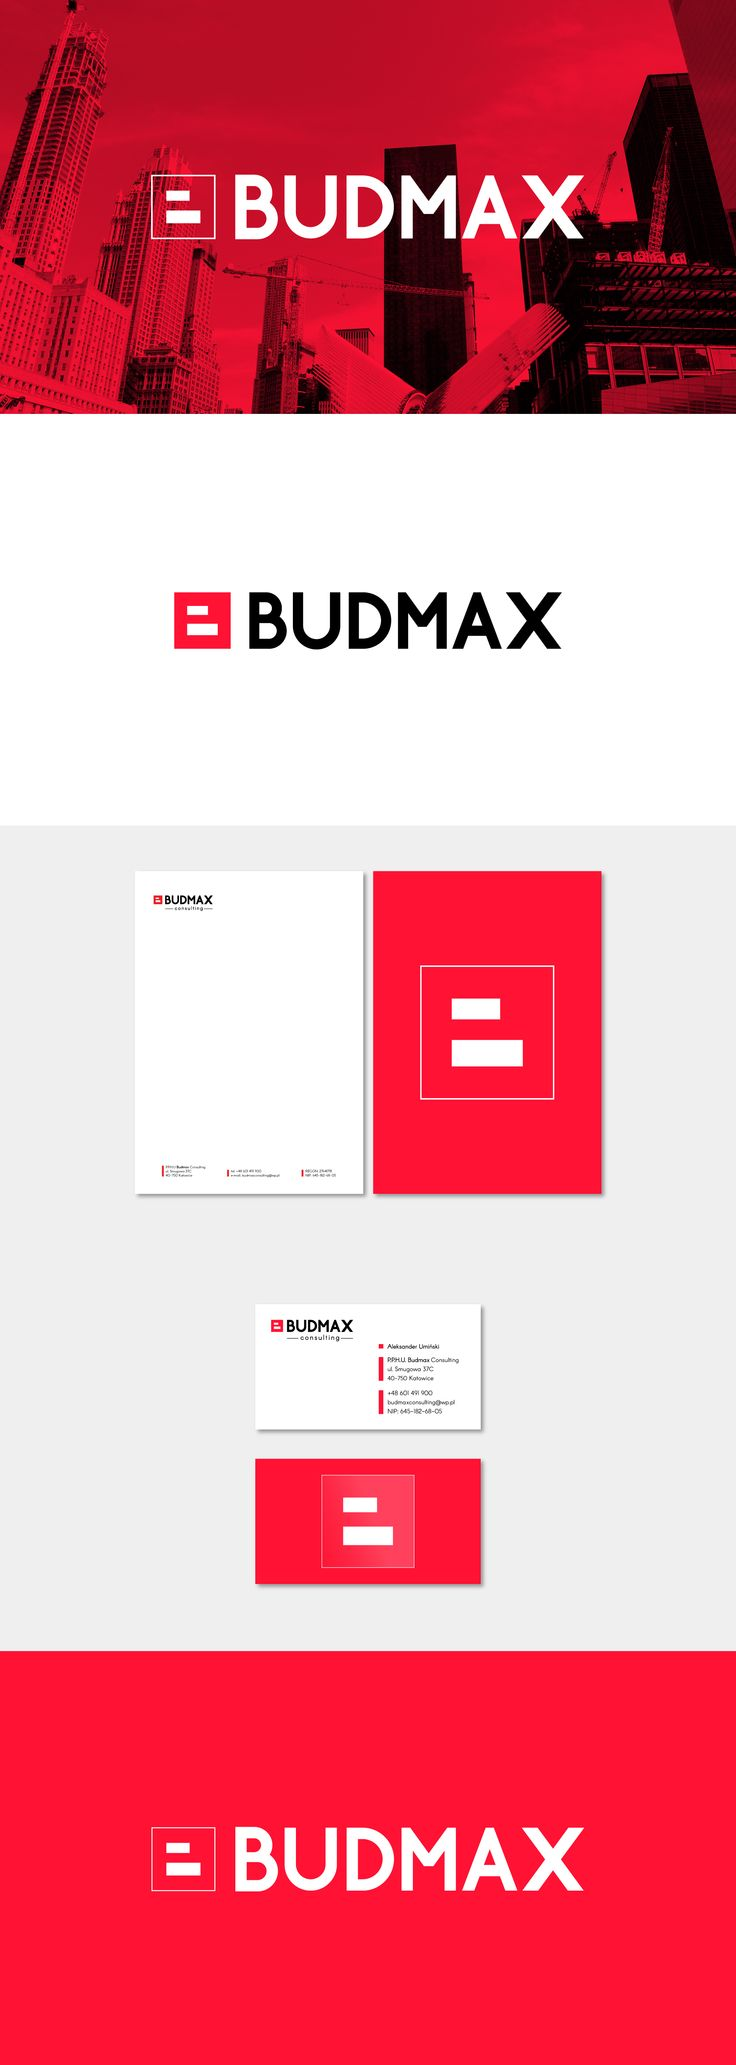 Budmax is a consulting company with extensive experience in construction market. We developed for Budmax new Brand Identity which contains Logo and Stationery design. Simple and strong sign, complemented by a strong typeface gave the company a dynamic, modern soul and highlights the strong market position.